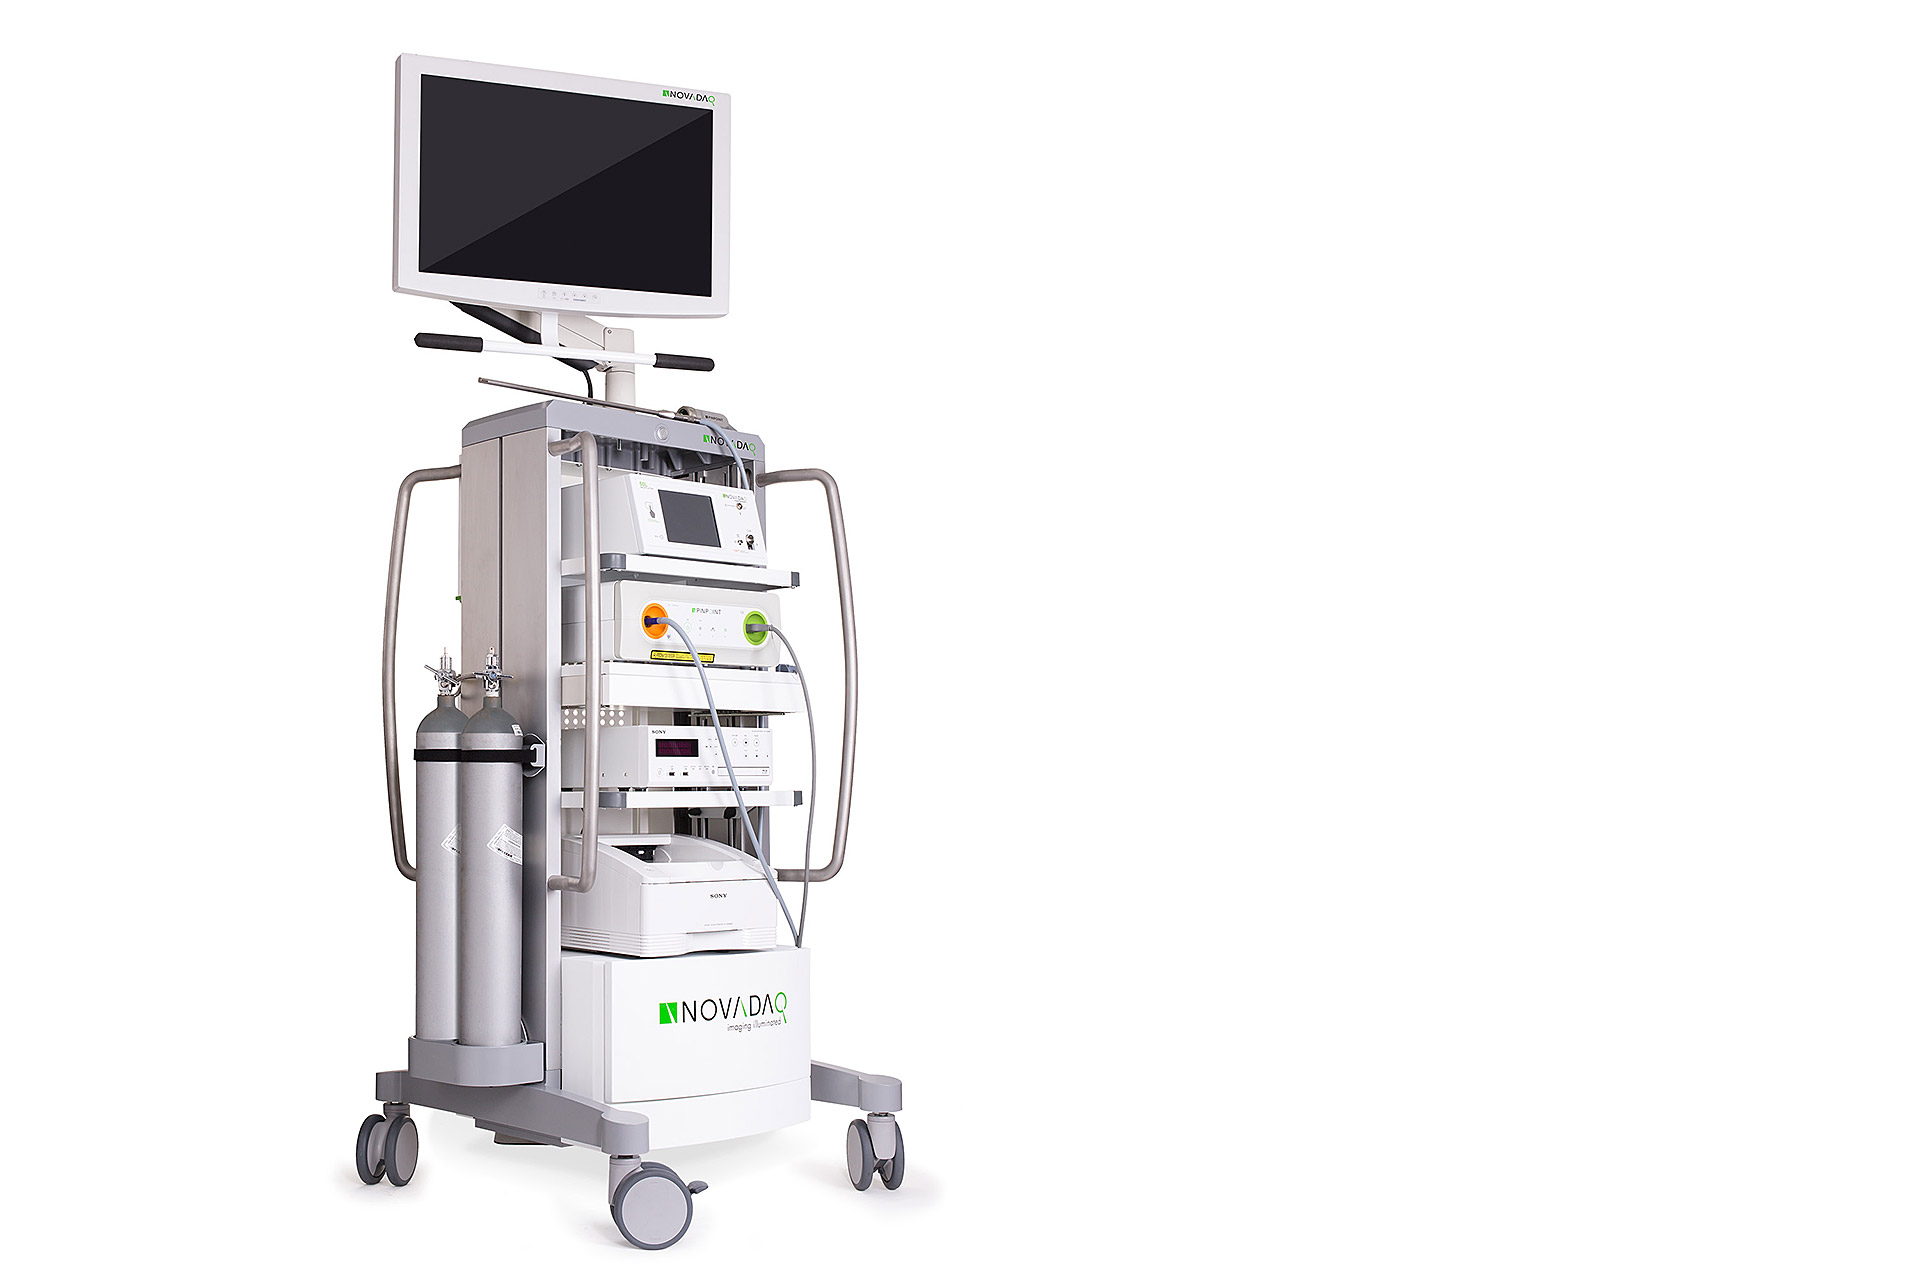 Novadaq PINPOINT® Endoscopic Fluorescence Imaging System